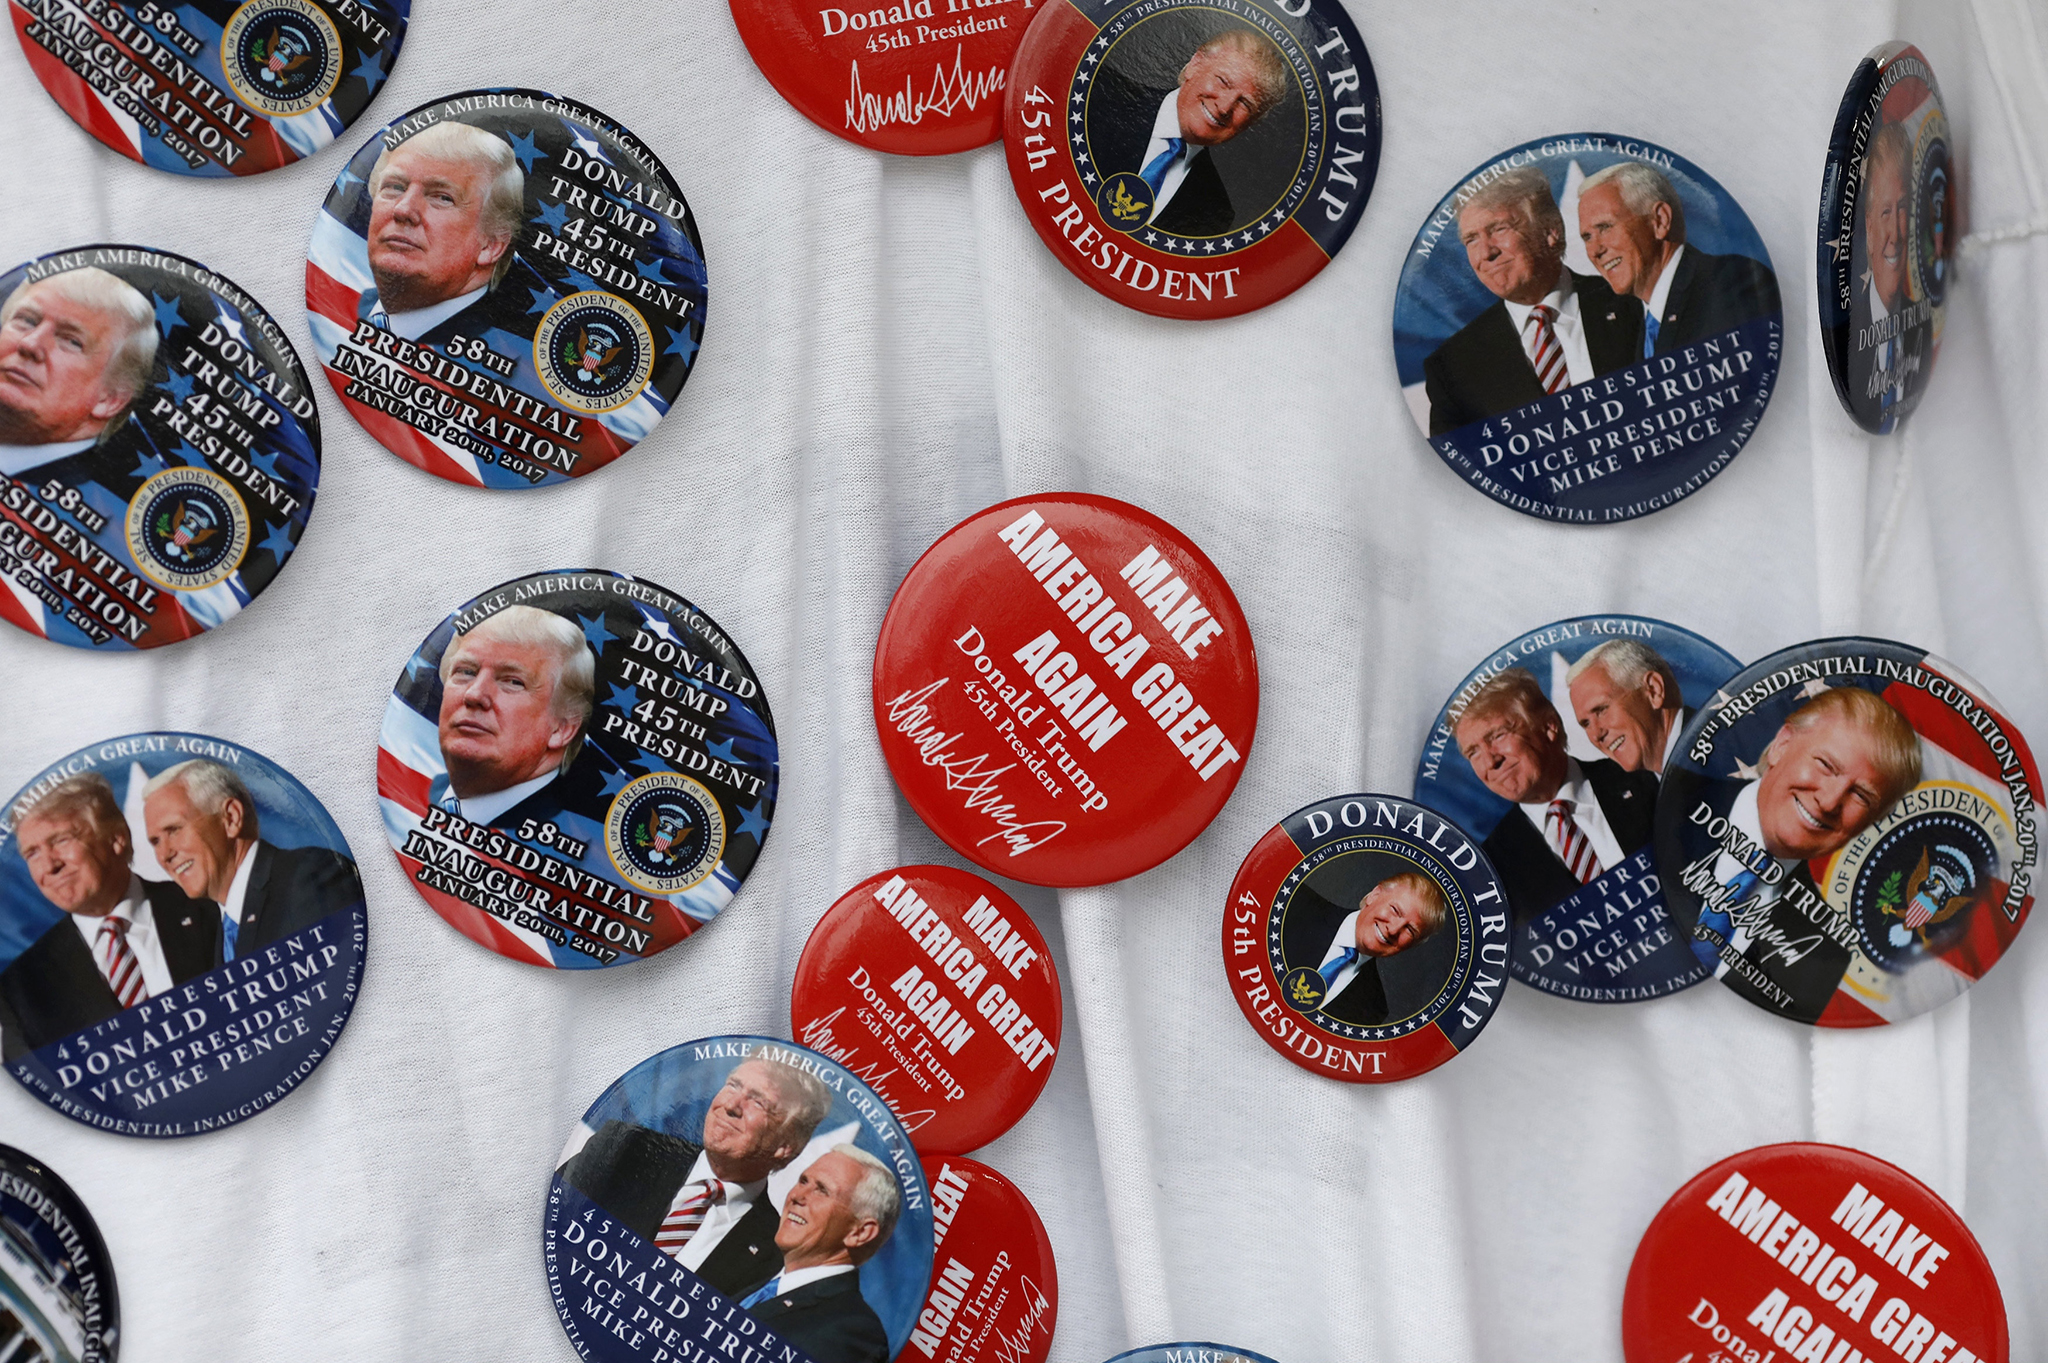 Inauguration merchandise is seen near the White House January 16, 2017 in Washington, DC. Authorities expect tens of thousands of supporters and protesters to descend on Washington for Friday's Inauguration ceremony.  (Photo by Aaron P. Bernstein/Getty Images)